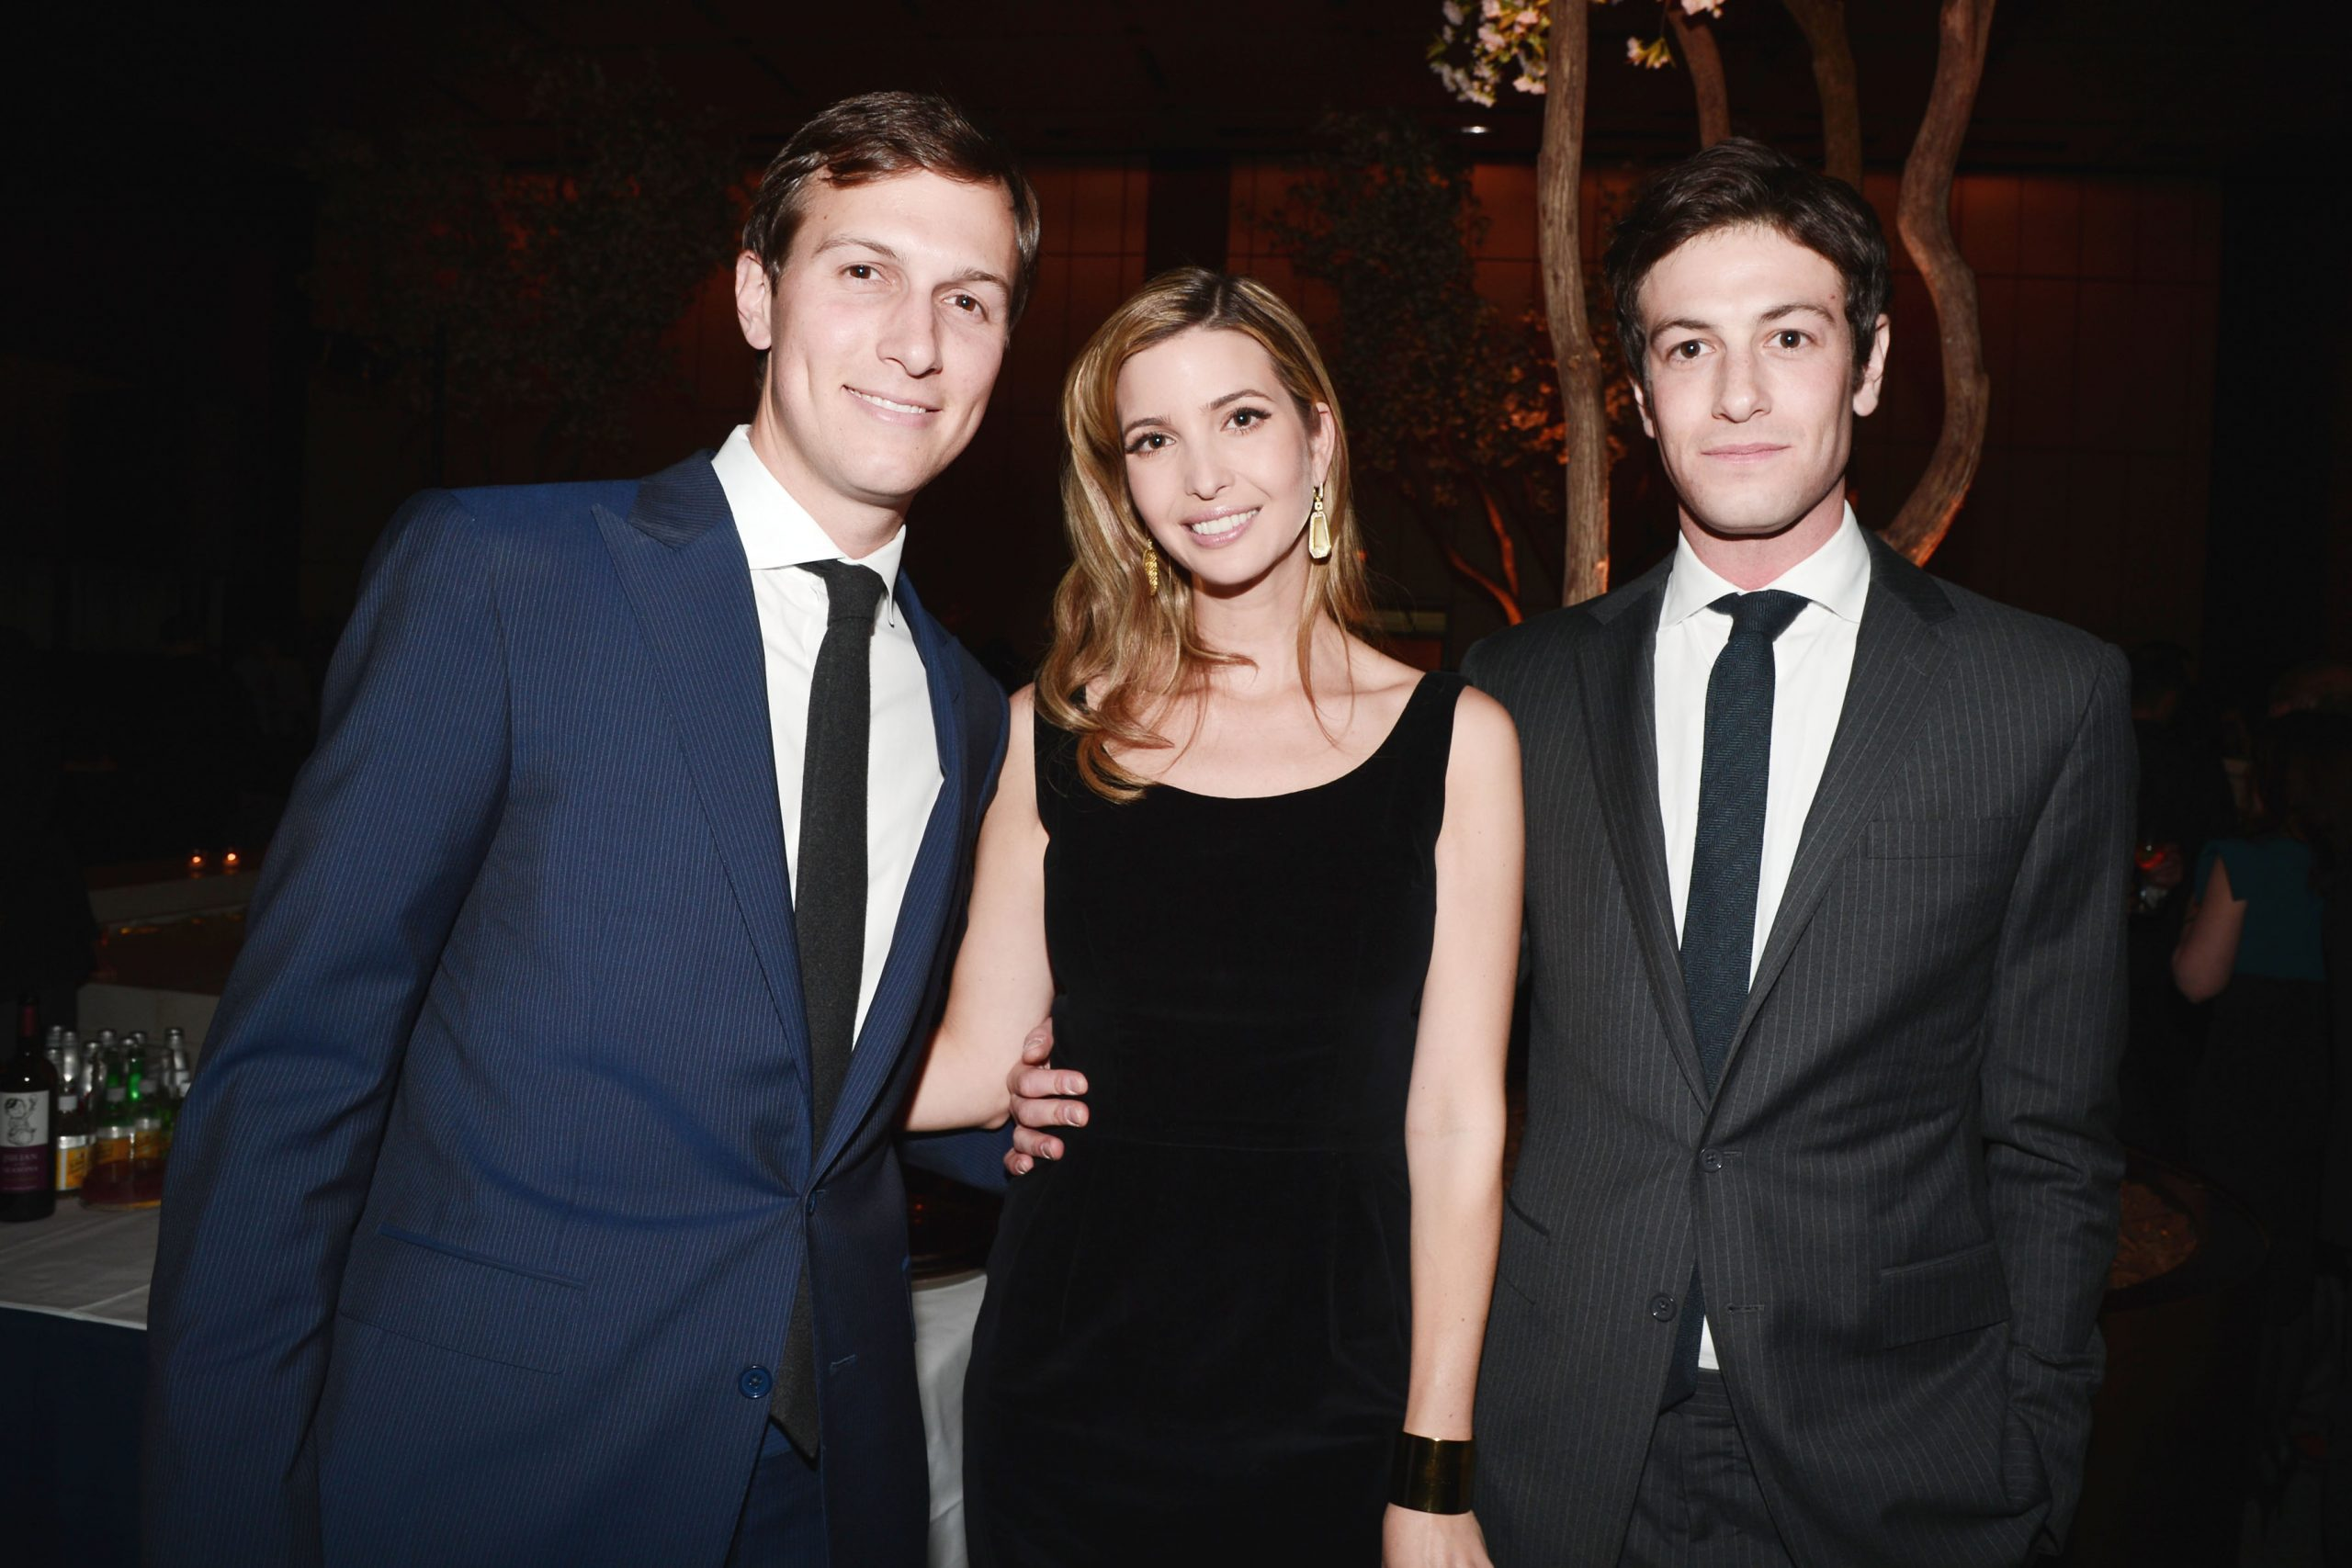 Wet Paint: Kushner Brother Angles to Become a Mega-Collector, Ai Weiwei Sows Misinformation on Biden Win, & More Art-World Gossip